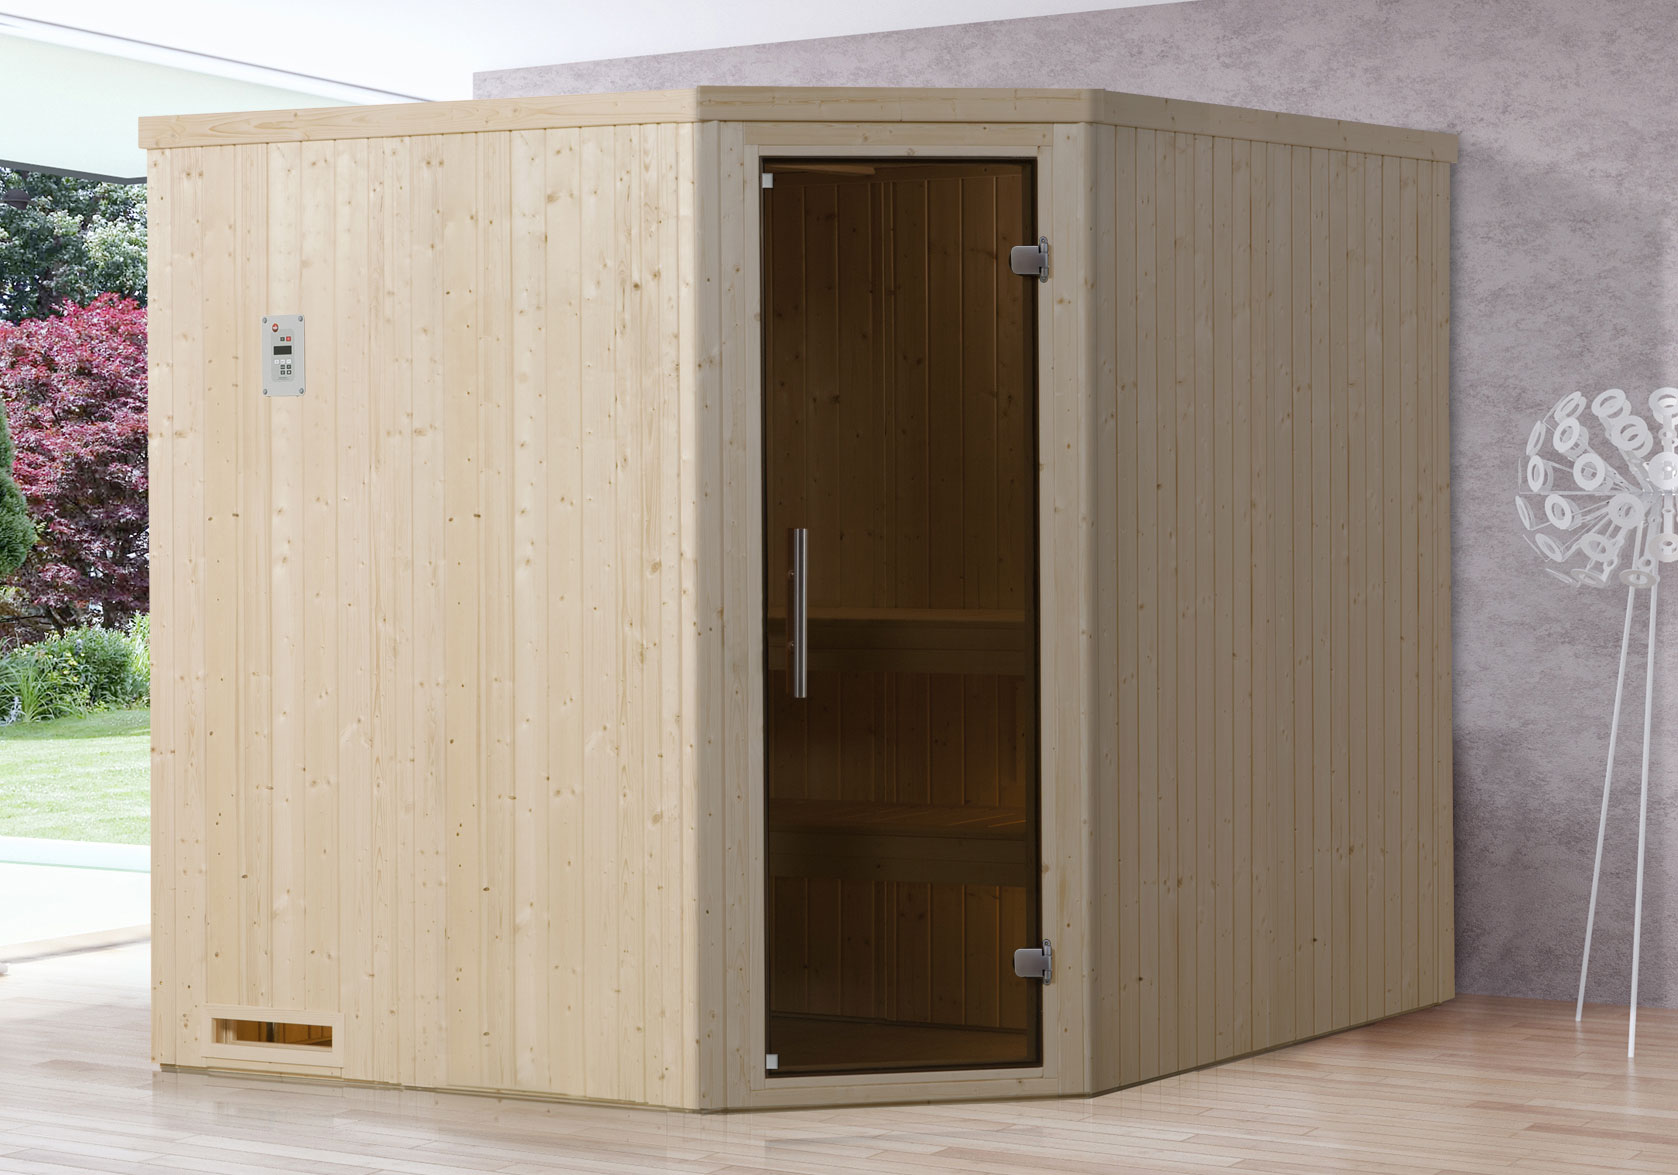 weka sauna 508 gt gr 4 elementsauna ohne saunaofen bei. Black Bedroom Furniture Sets. Home Design Ideas